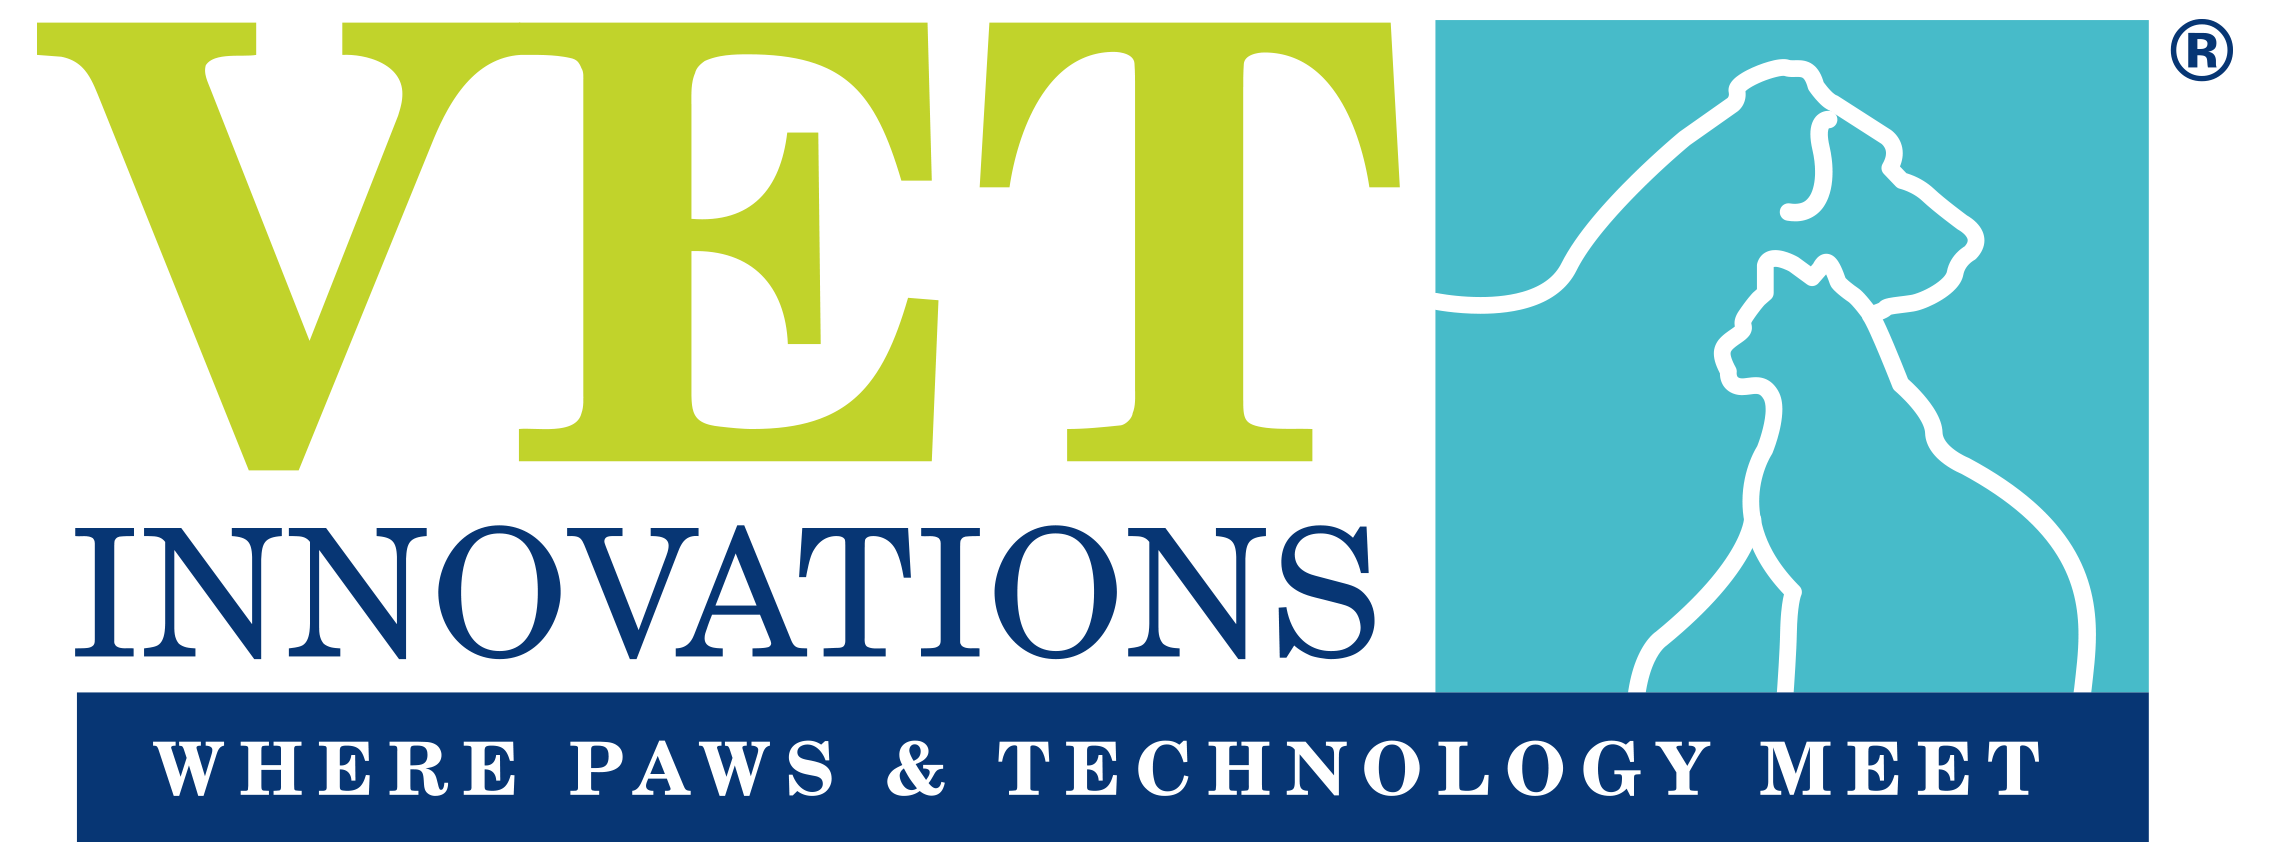 vet innovations logo